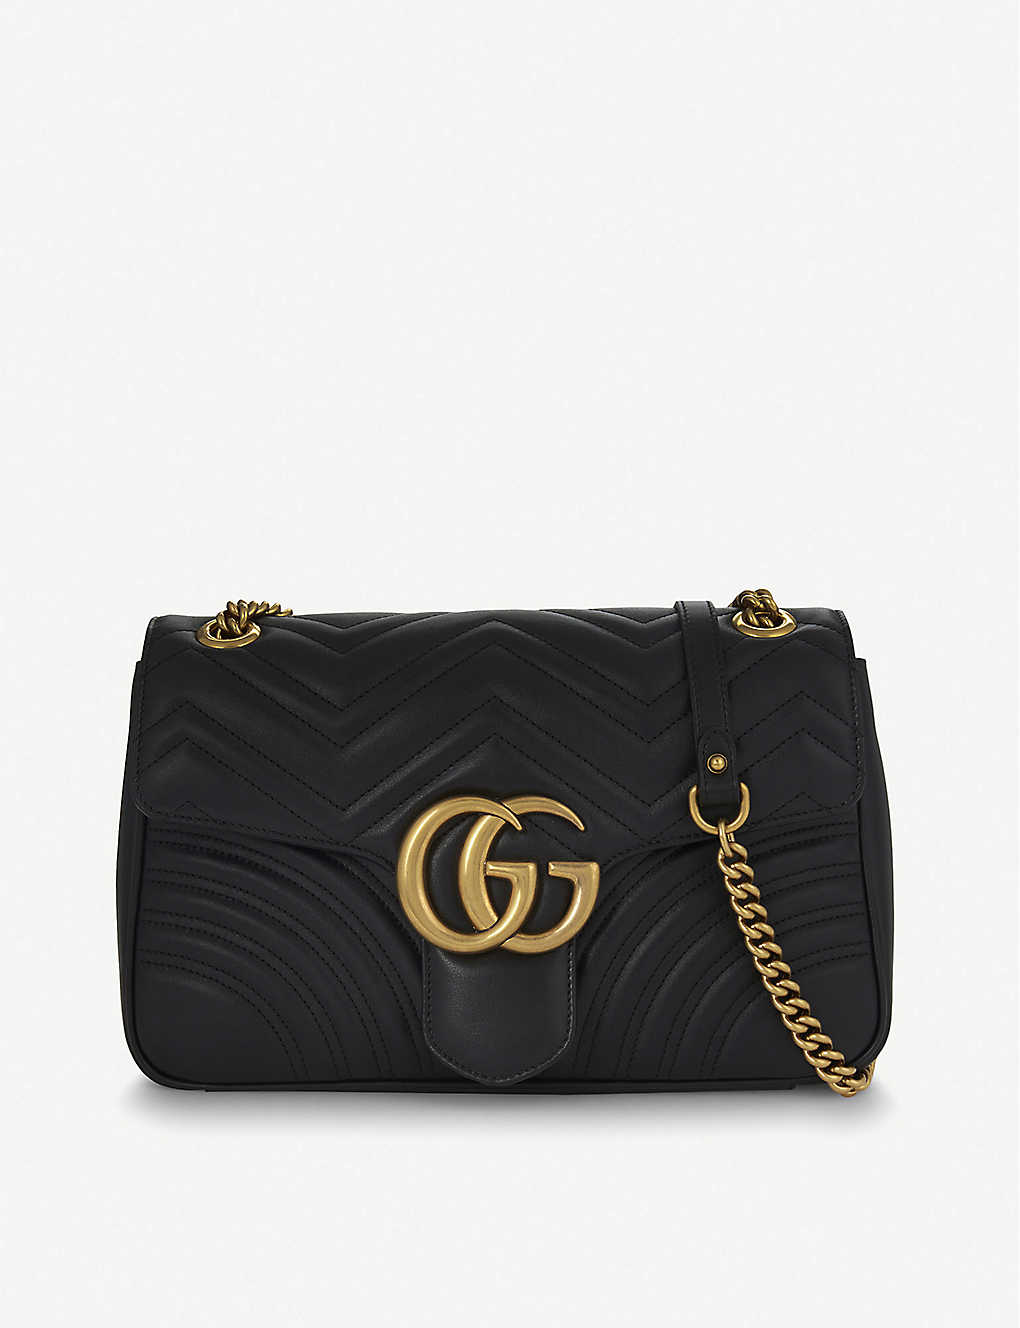 3e080beec97c GUCCI - GG Marmont medium leather shoulder bag | Selfridges.com